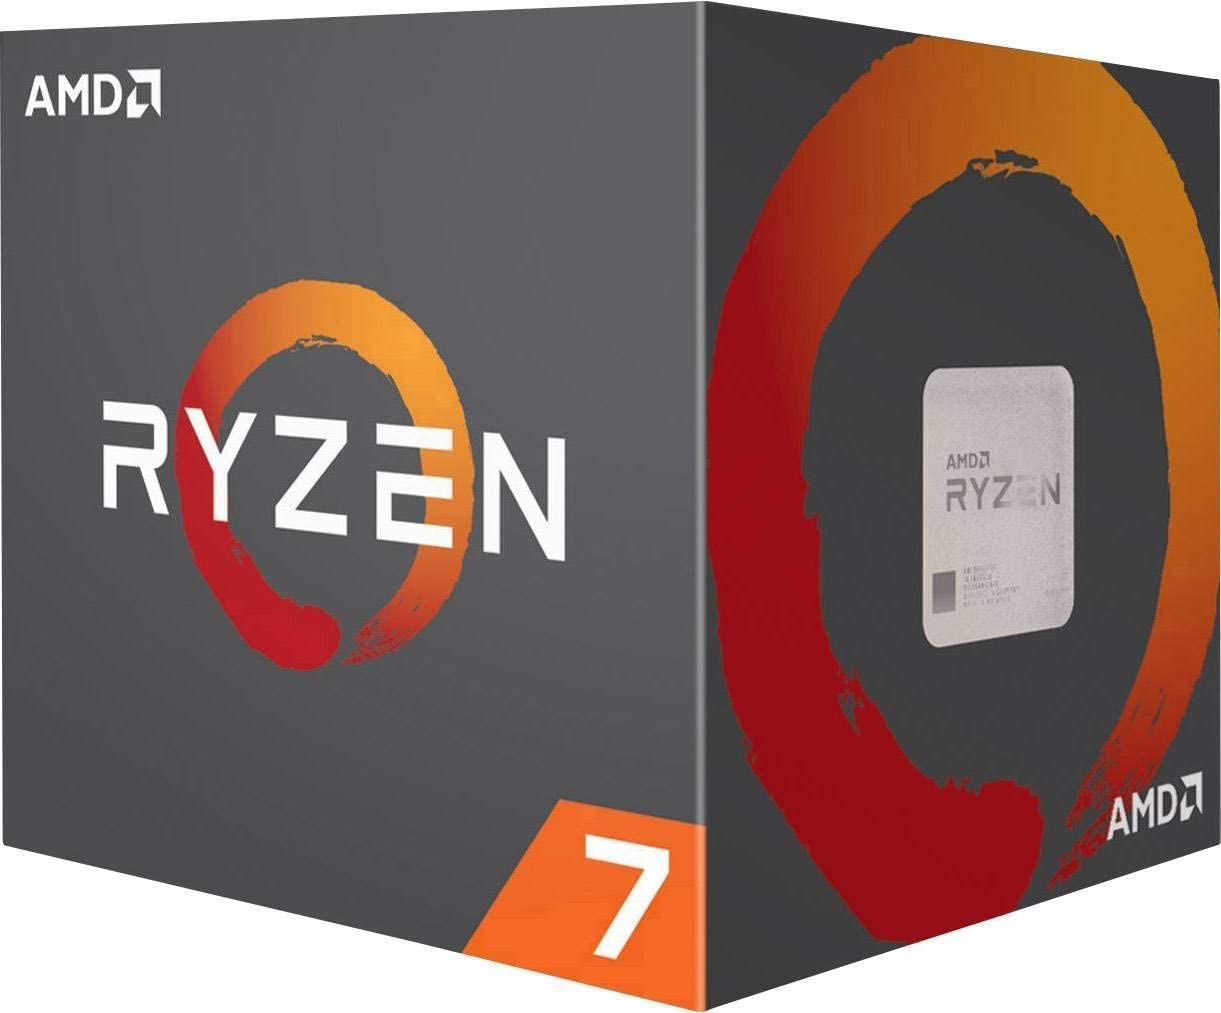 AMD Ryzen 7 3800X CPU with Wraith Prism cooler (7NM, 8/16 Cores/Threads, 3.9GHz Base, 4.5GHz Boost, Socket AM4, 105W TDP Desktop Processor), Model 100-100000025BOX